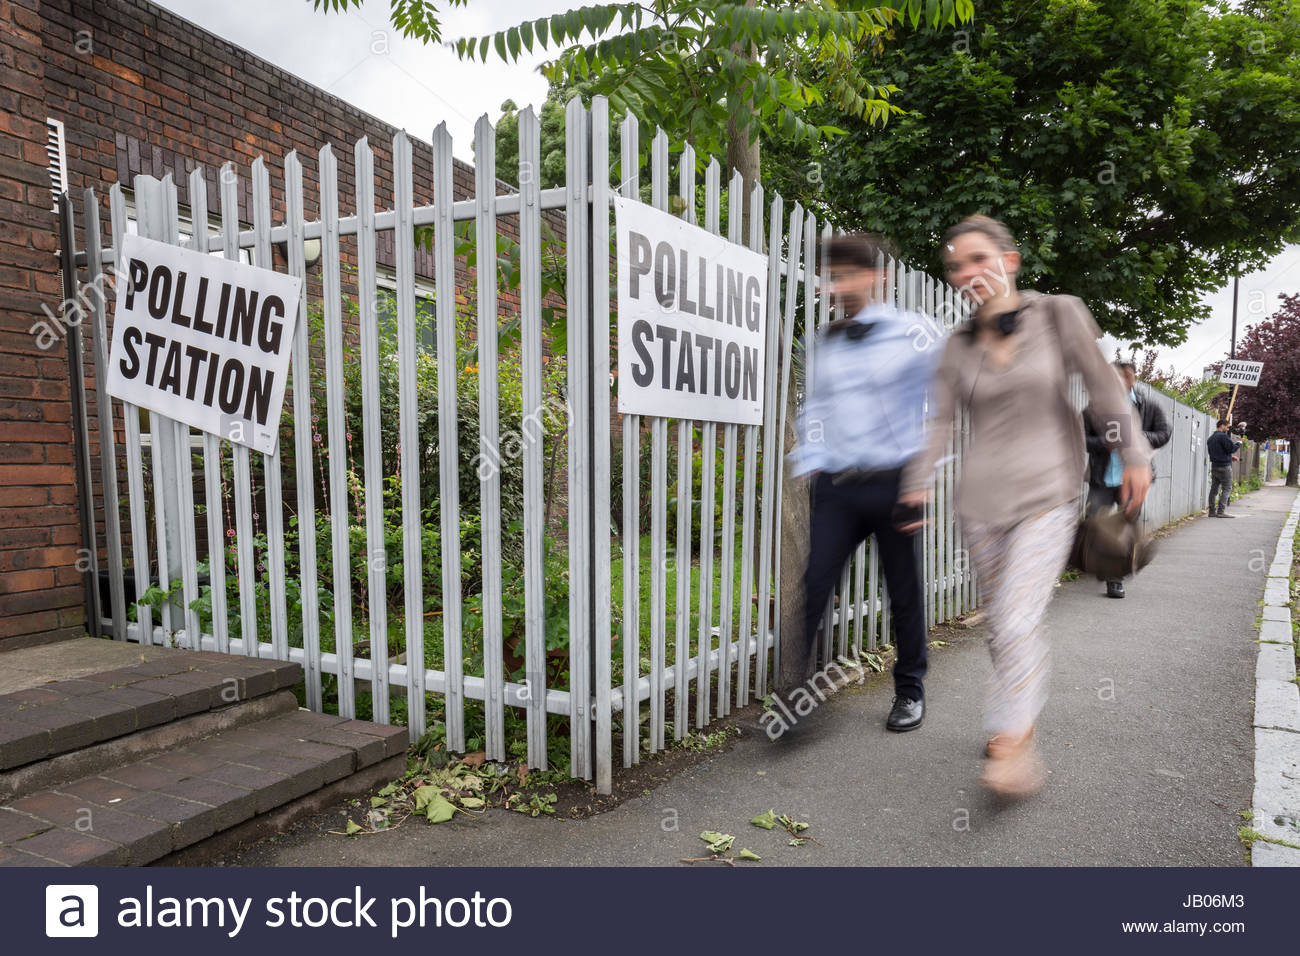 London, UK. 8th June, 2017. Polling Station leading towards Childeric Primary School. General Election Polling Day - Stock Image